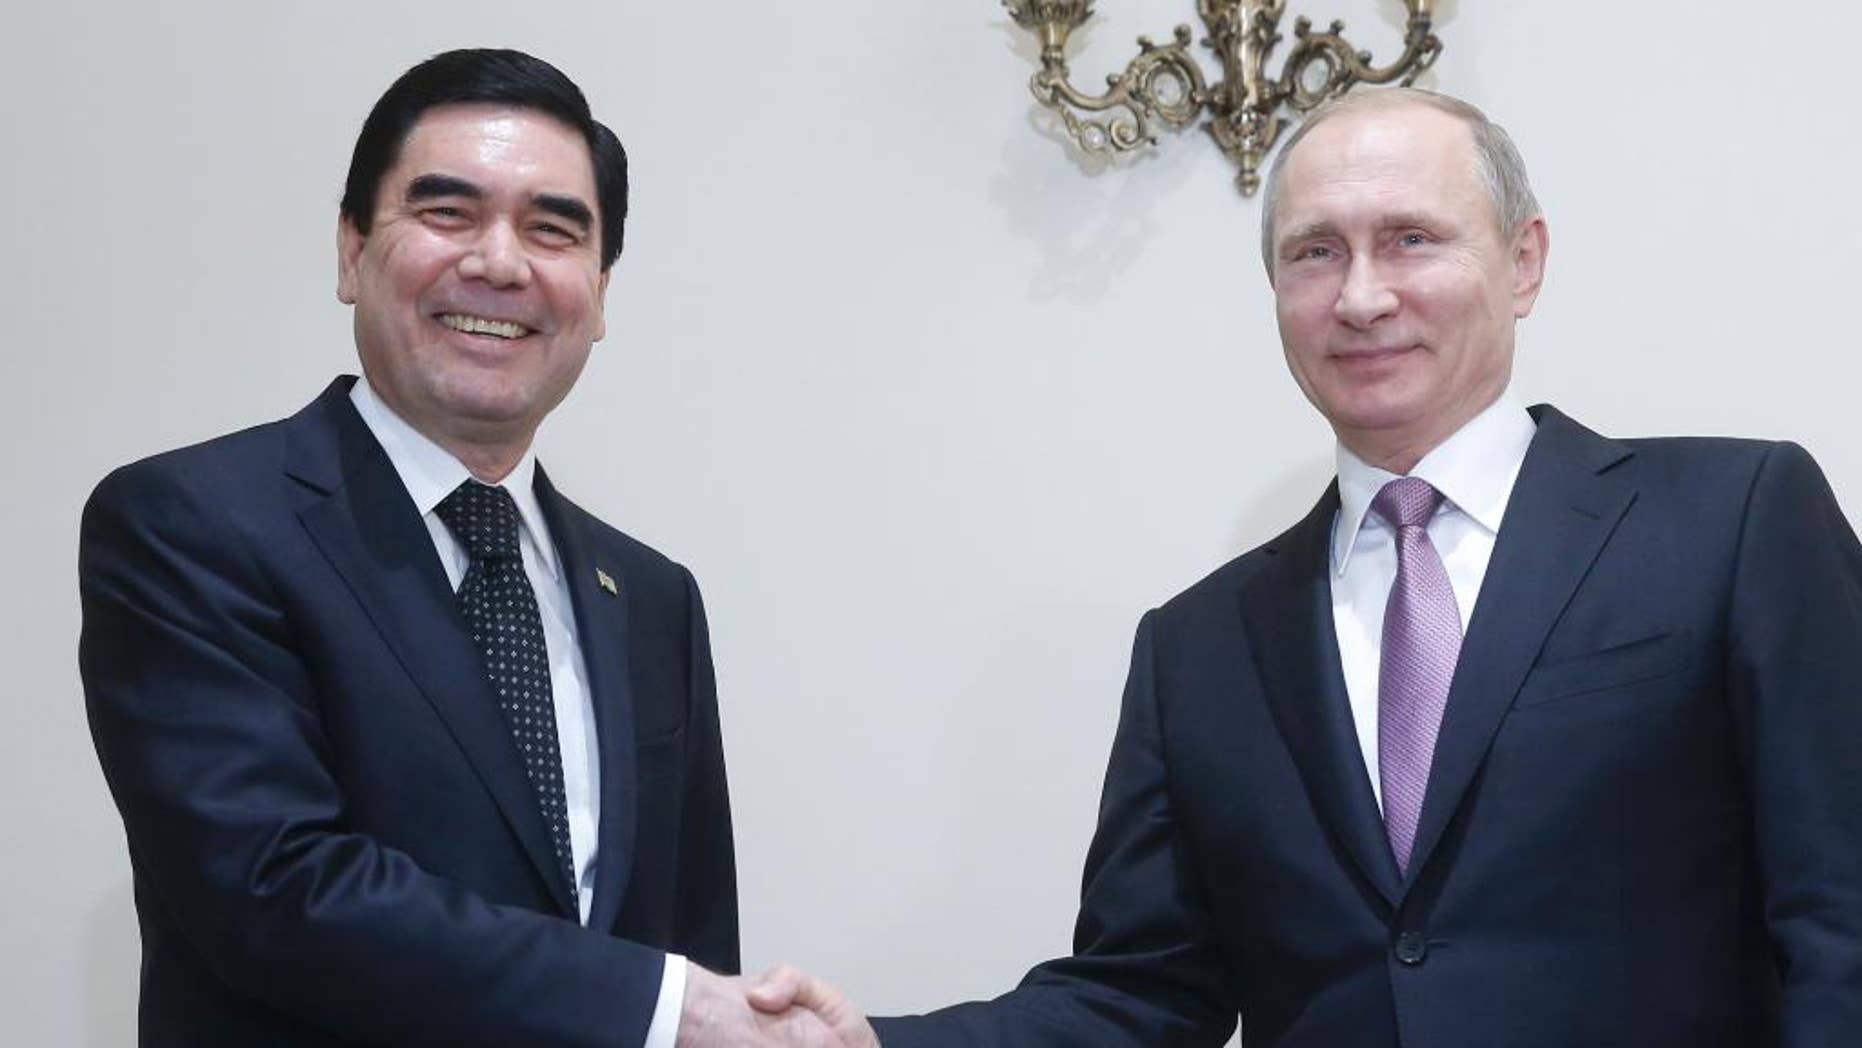 FILE- In this Nov. 23, 2015 file image, Russian President Vladimir Putin, right, shakes hands with his Turkmenistan counterpart Gurbanguly Berdymukhamedov during their meeting at the Gas Exporting Countries Forum, GECF, summit in Tehran, Iran. Lawmakers in the Central Asian nation of Turkmenistan have adopted Wednesday 14 September amendments to the country's constitution, paving the way for a life-long presidency for the incumbent leader Gurbanguly Berdymukhamedov. (Sergei Chirikov/Pool photo via AP file)